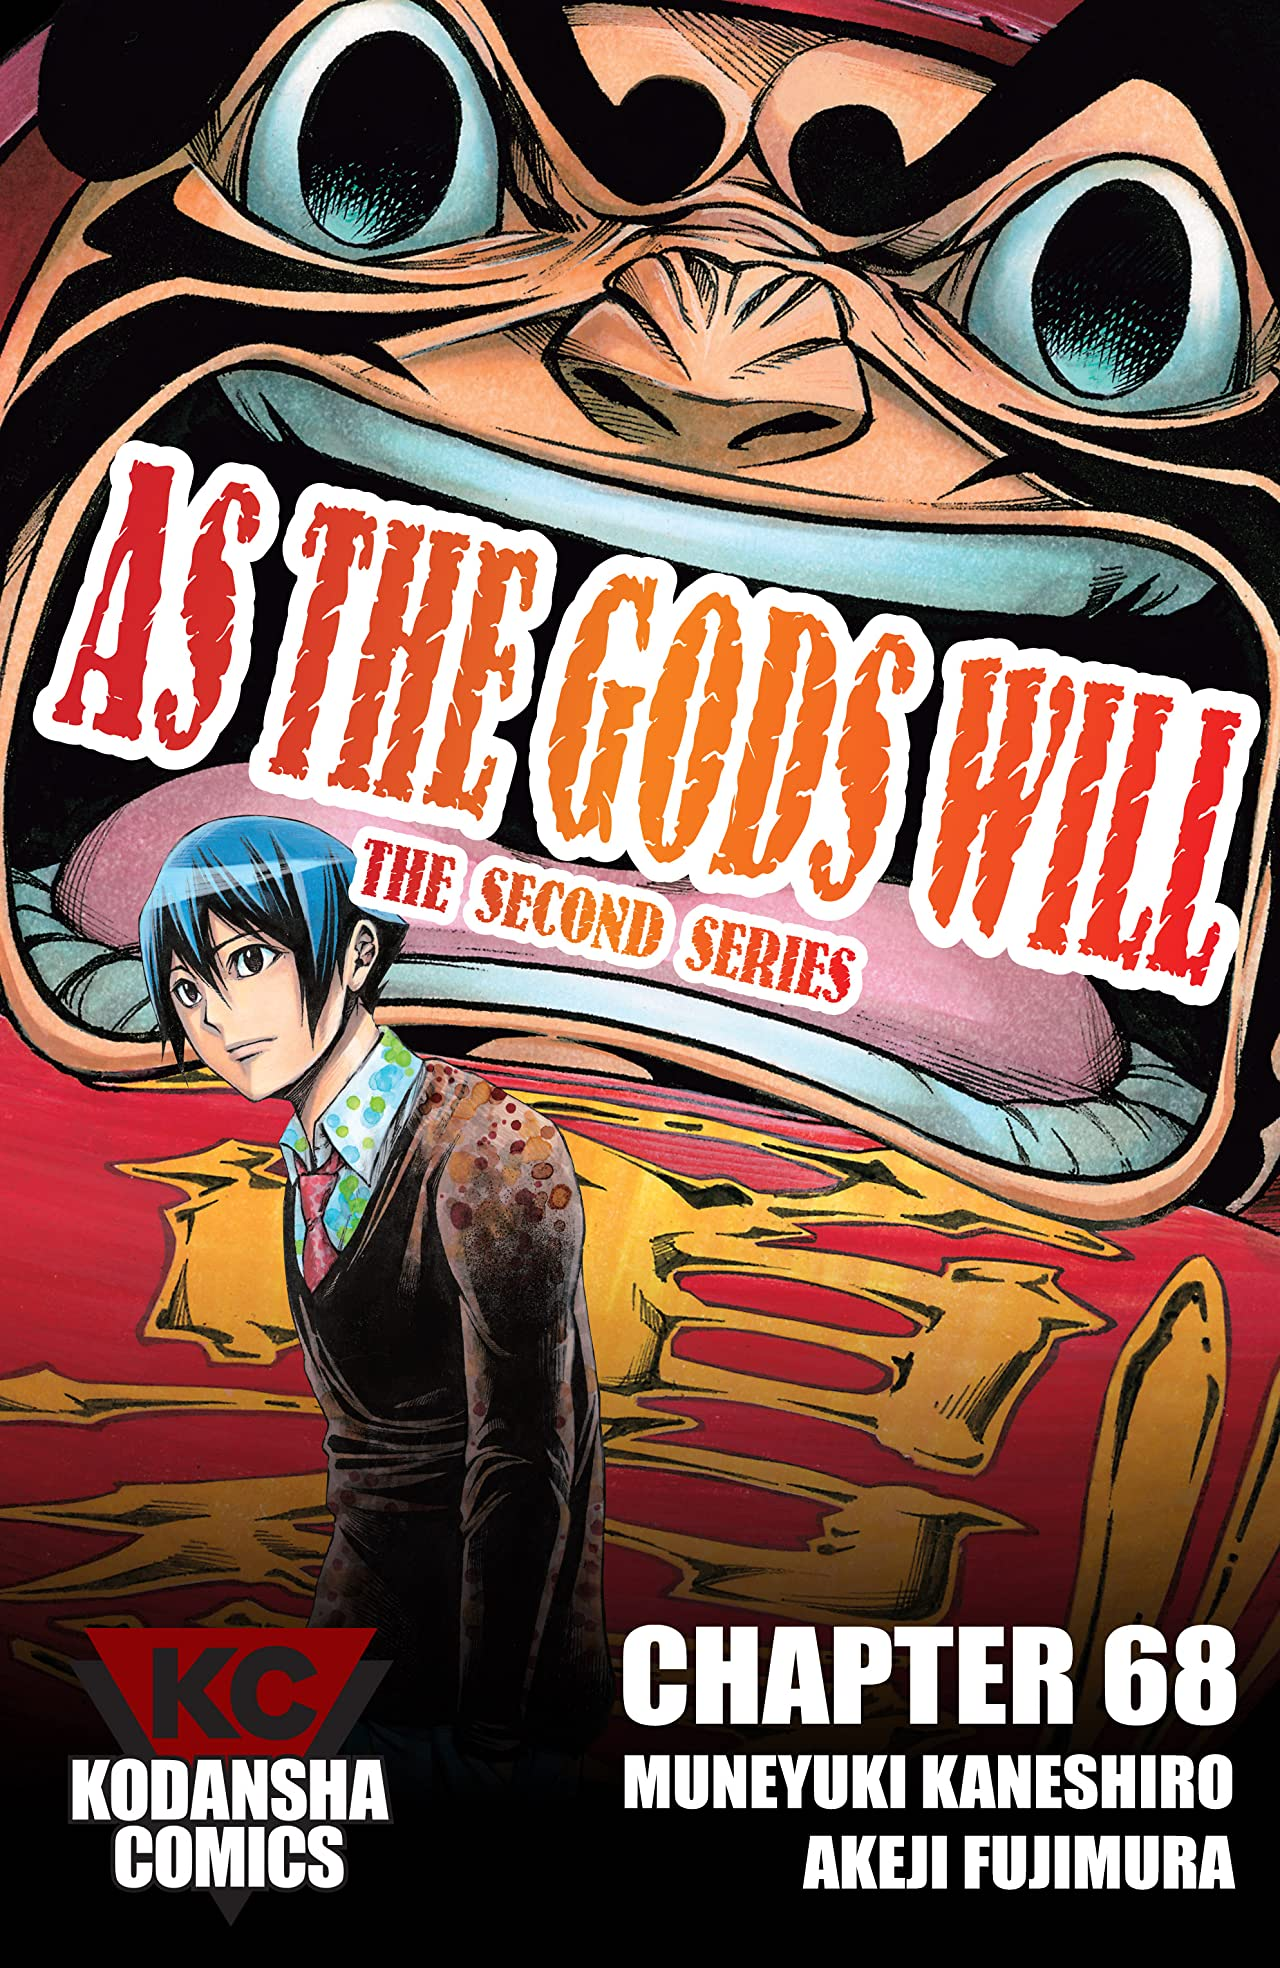 As The Gods Will: The Second Series #68